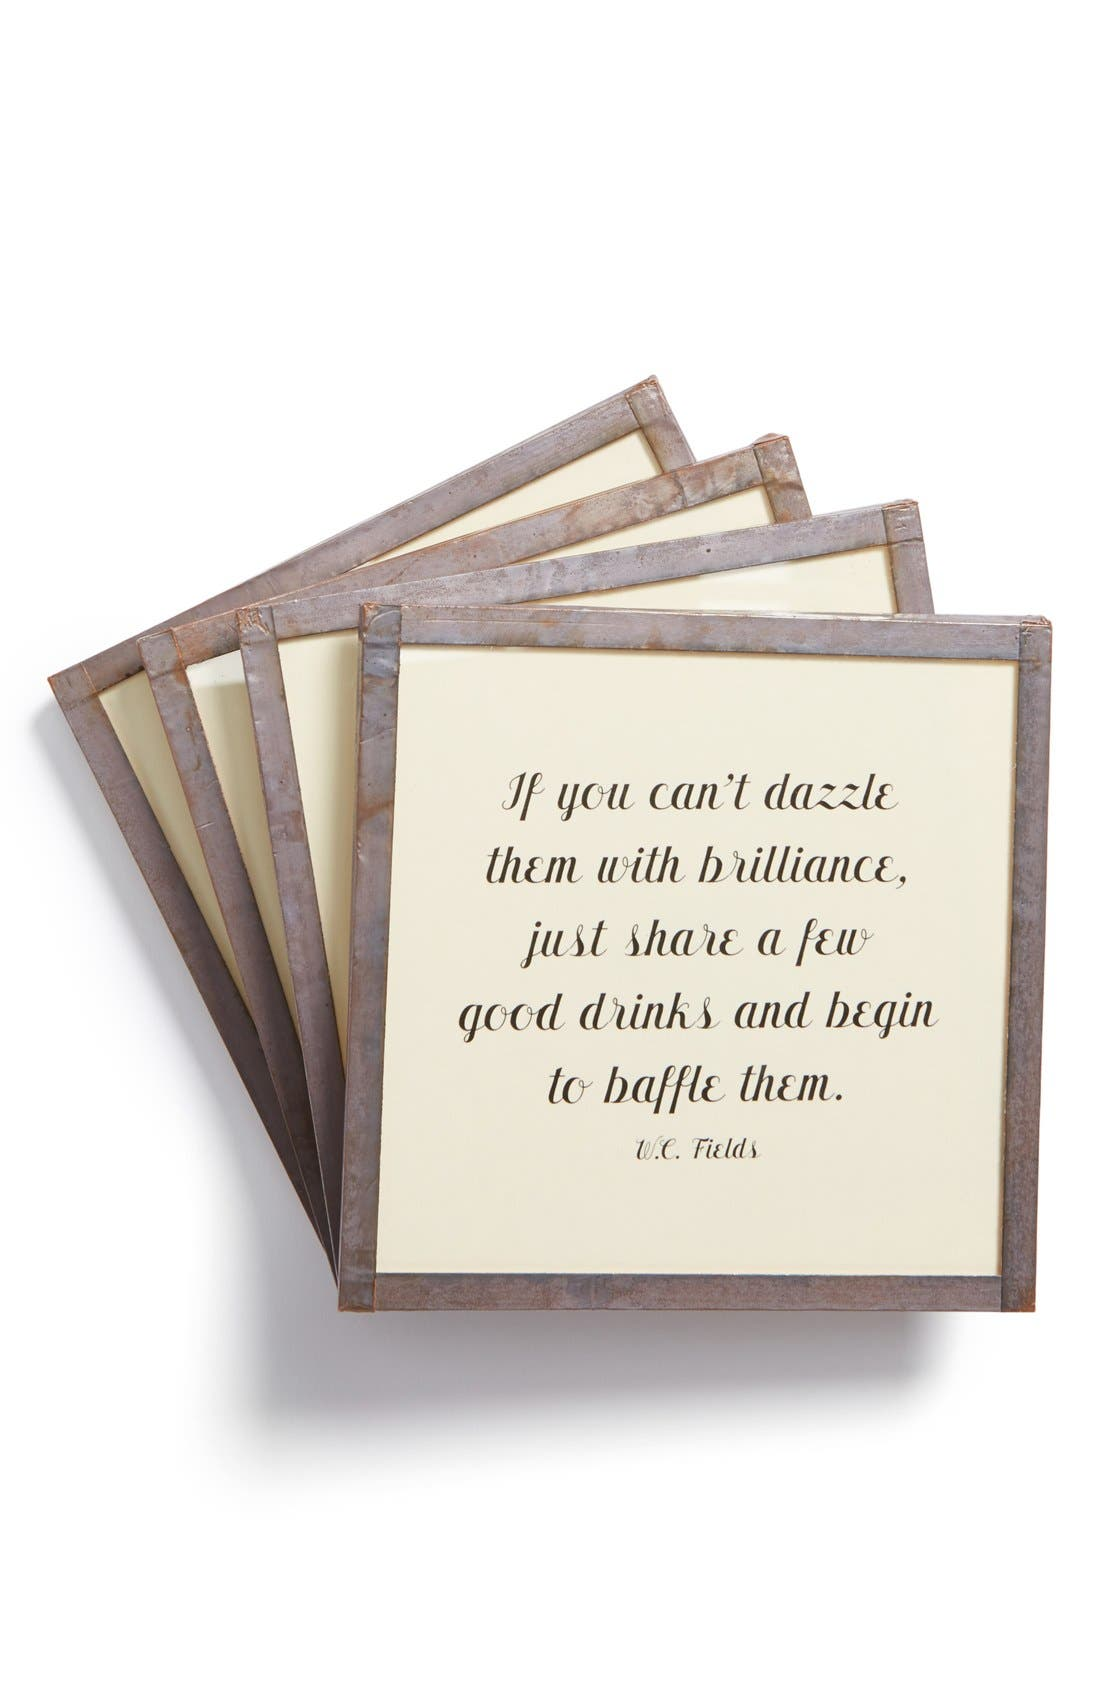 Main Image - Ben's Garden 'If You Can't Dazzle Them' Coasters (Set of 4)